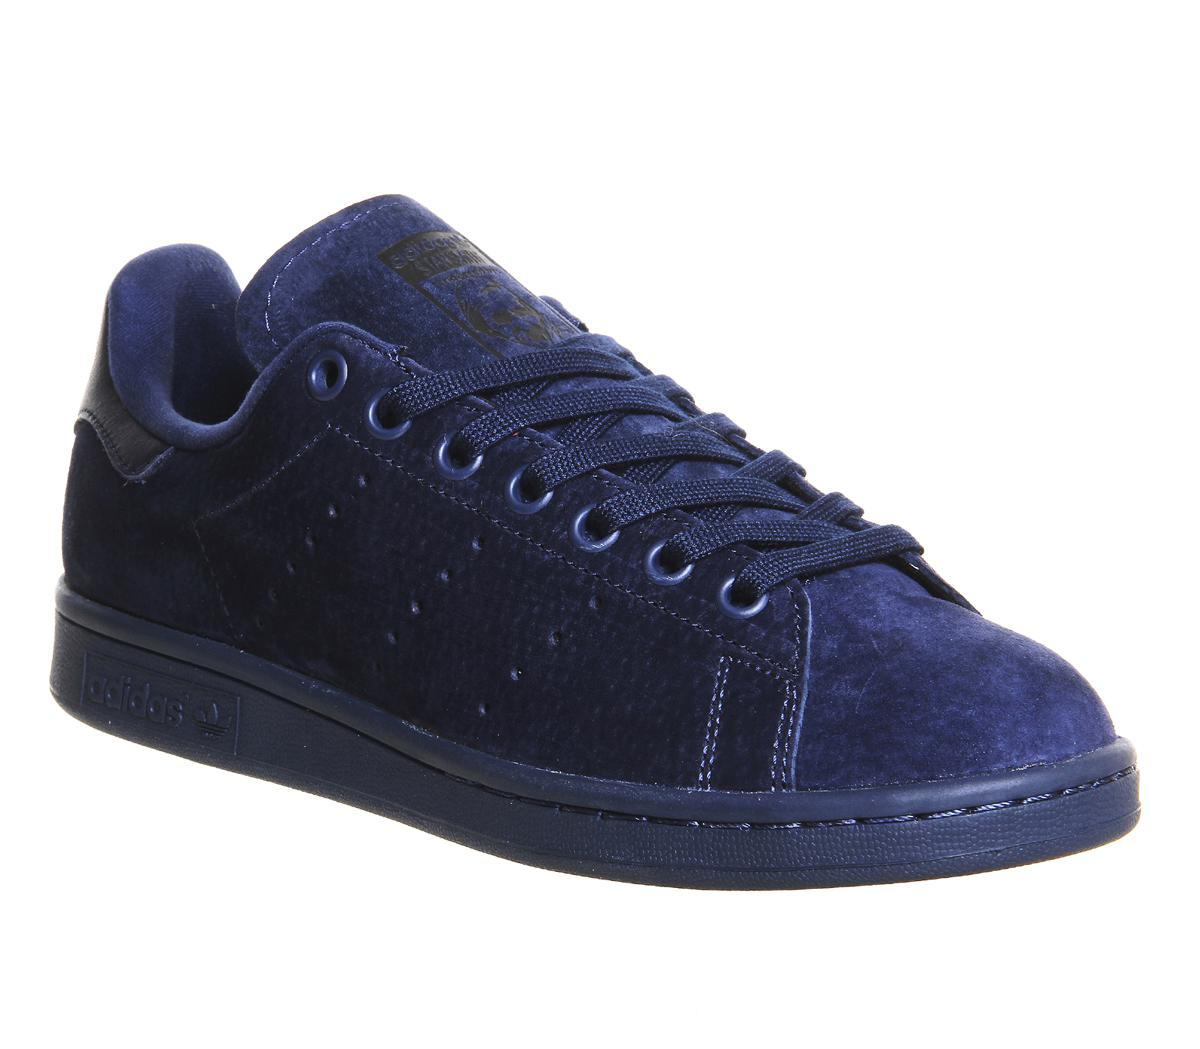 a03ecb99d629 Lyst - adidas Stan Smith Suede Sneakers - Blue in Blue for Men